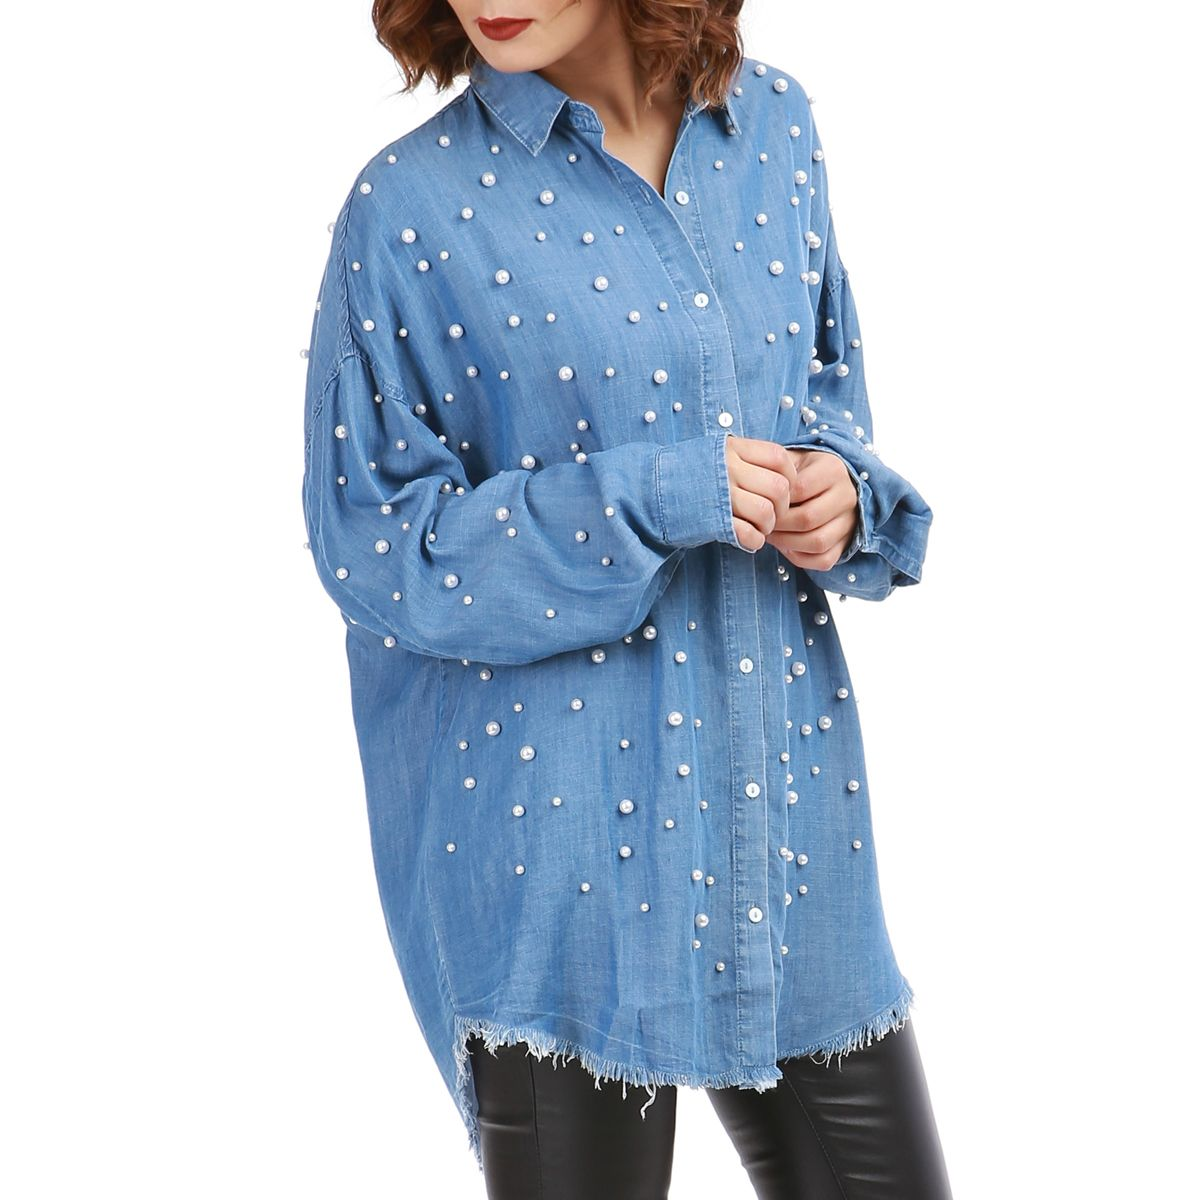 Chemise oversize femme pas cher   Fisysconsulting 32a59115a9c